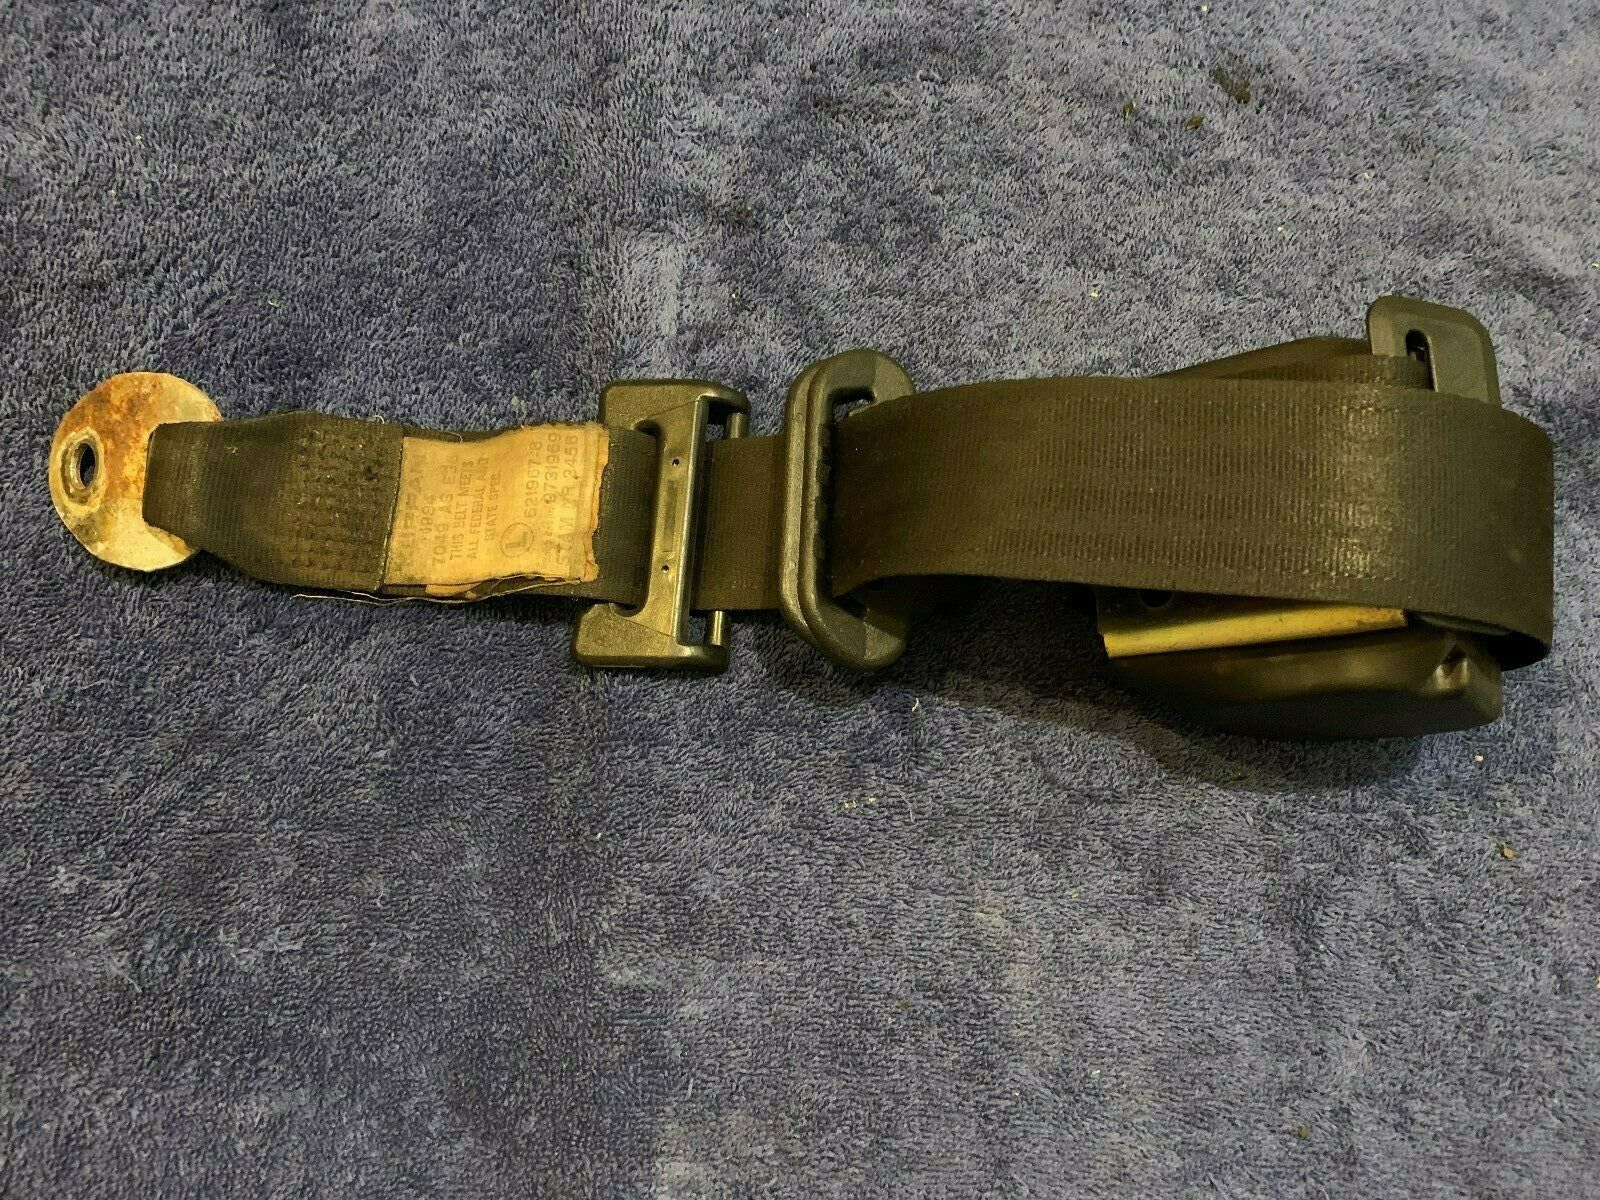 1984 - 1989 Classic Saab 900 Turbo Hatchback Left Rear Seat Belt Re-tractor 97 31 969